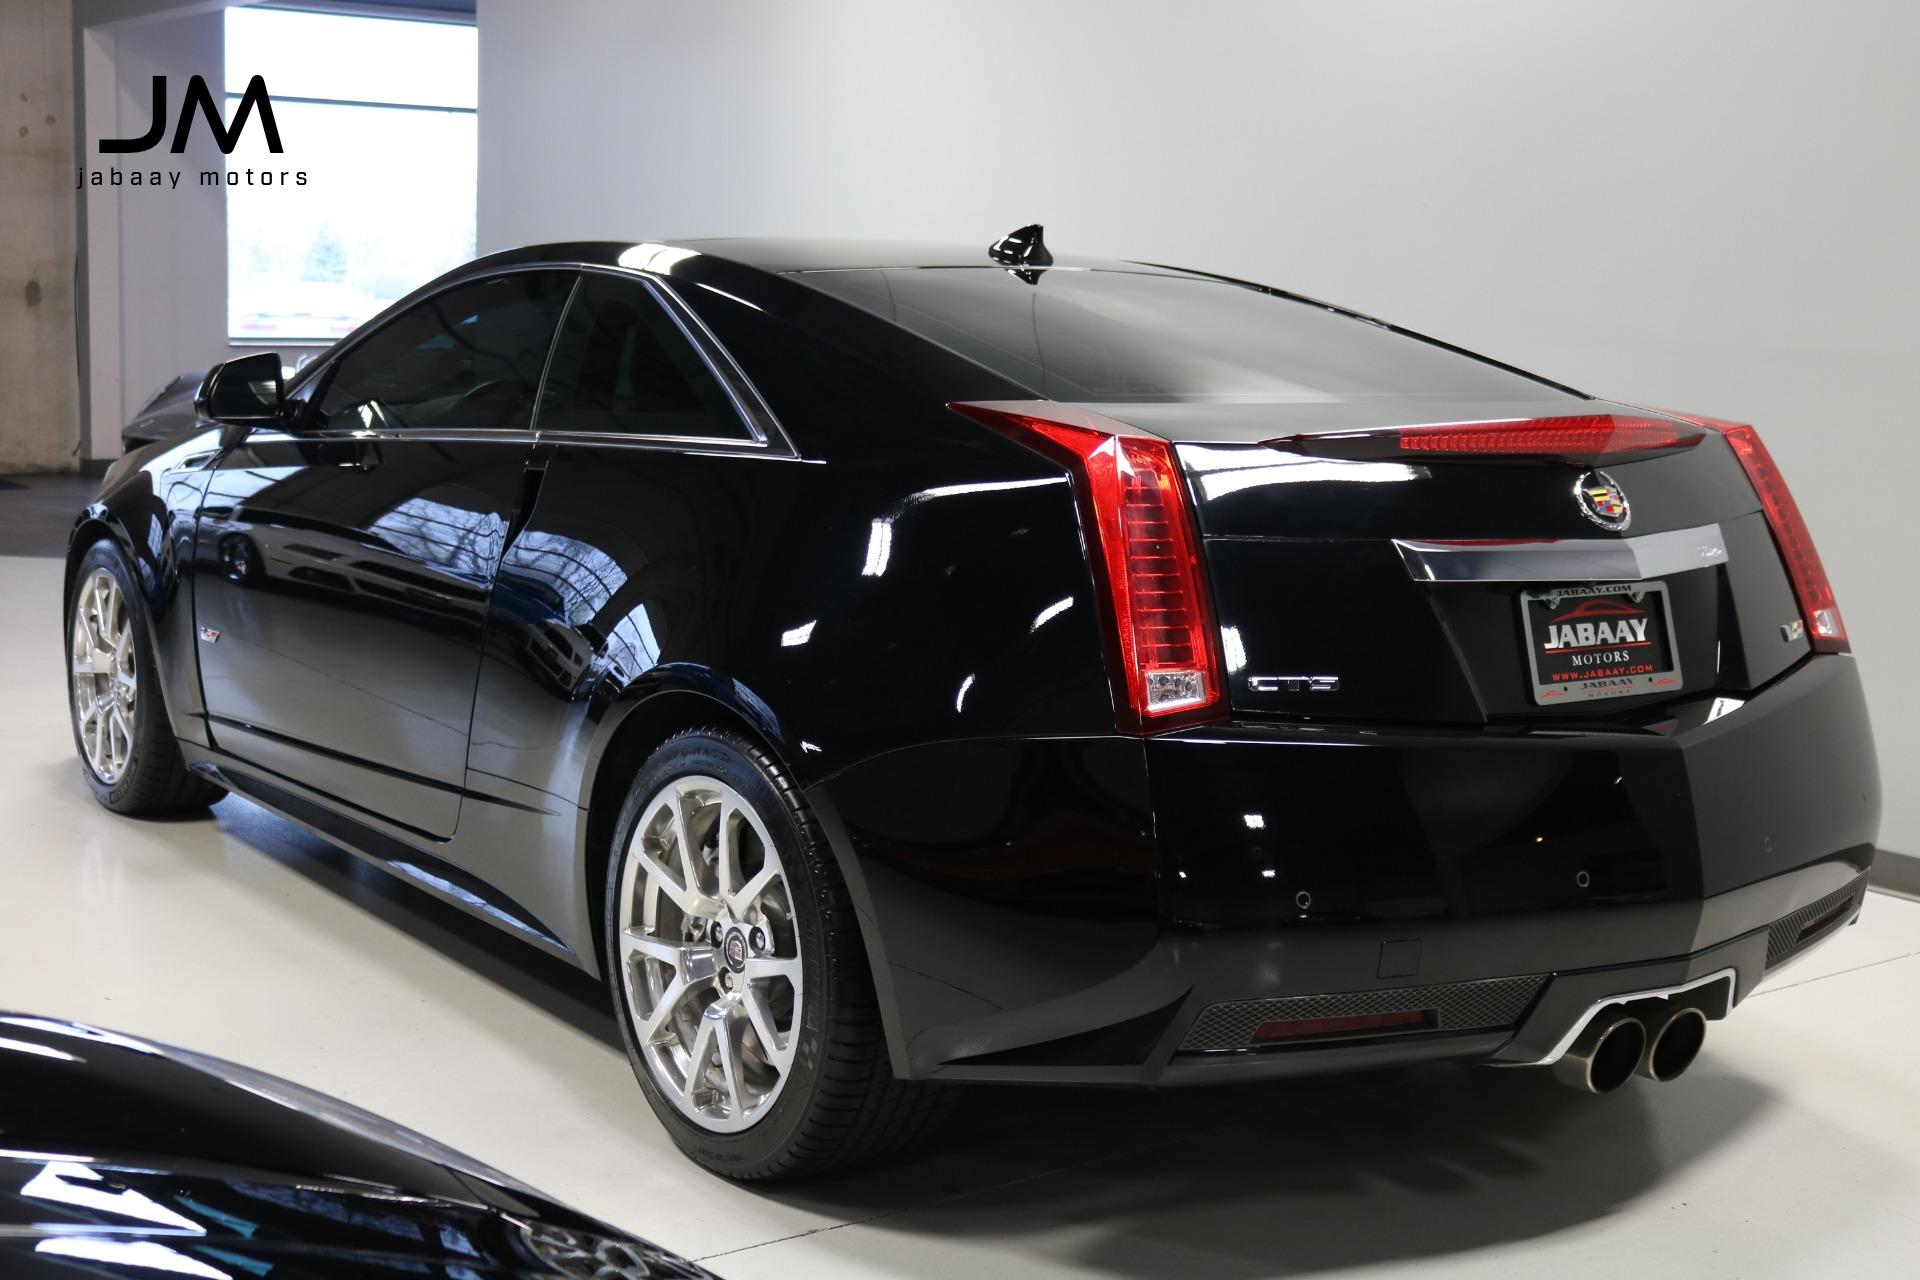 Used 2011 Cadillac Cts V Base 2dr Coupe For Sale Sold Jabaay Motors Inc Stock Jm7162a